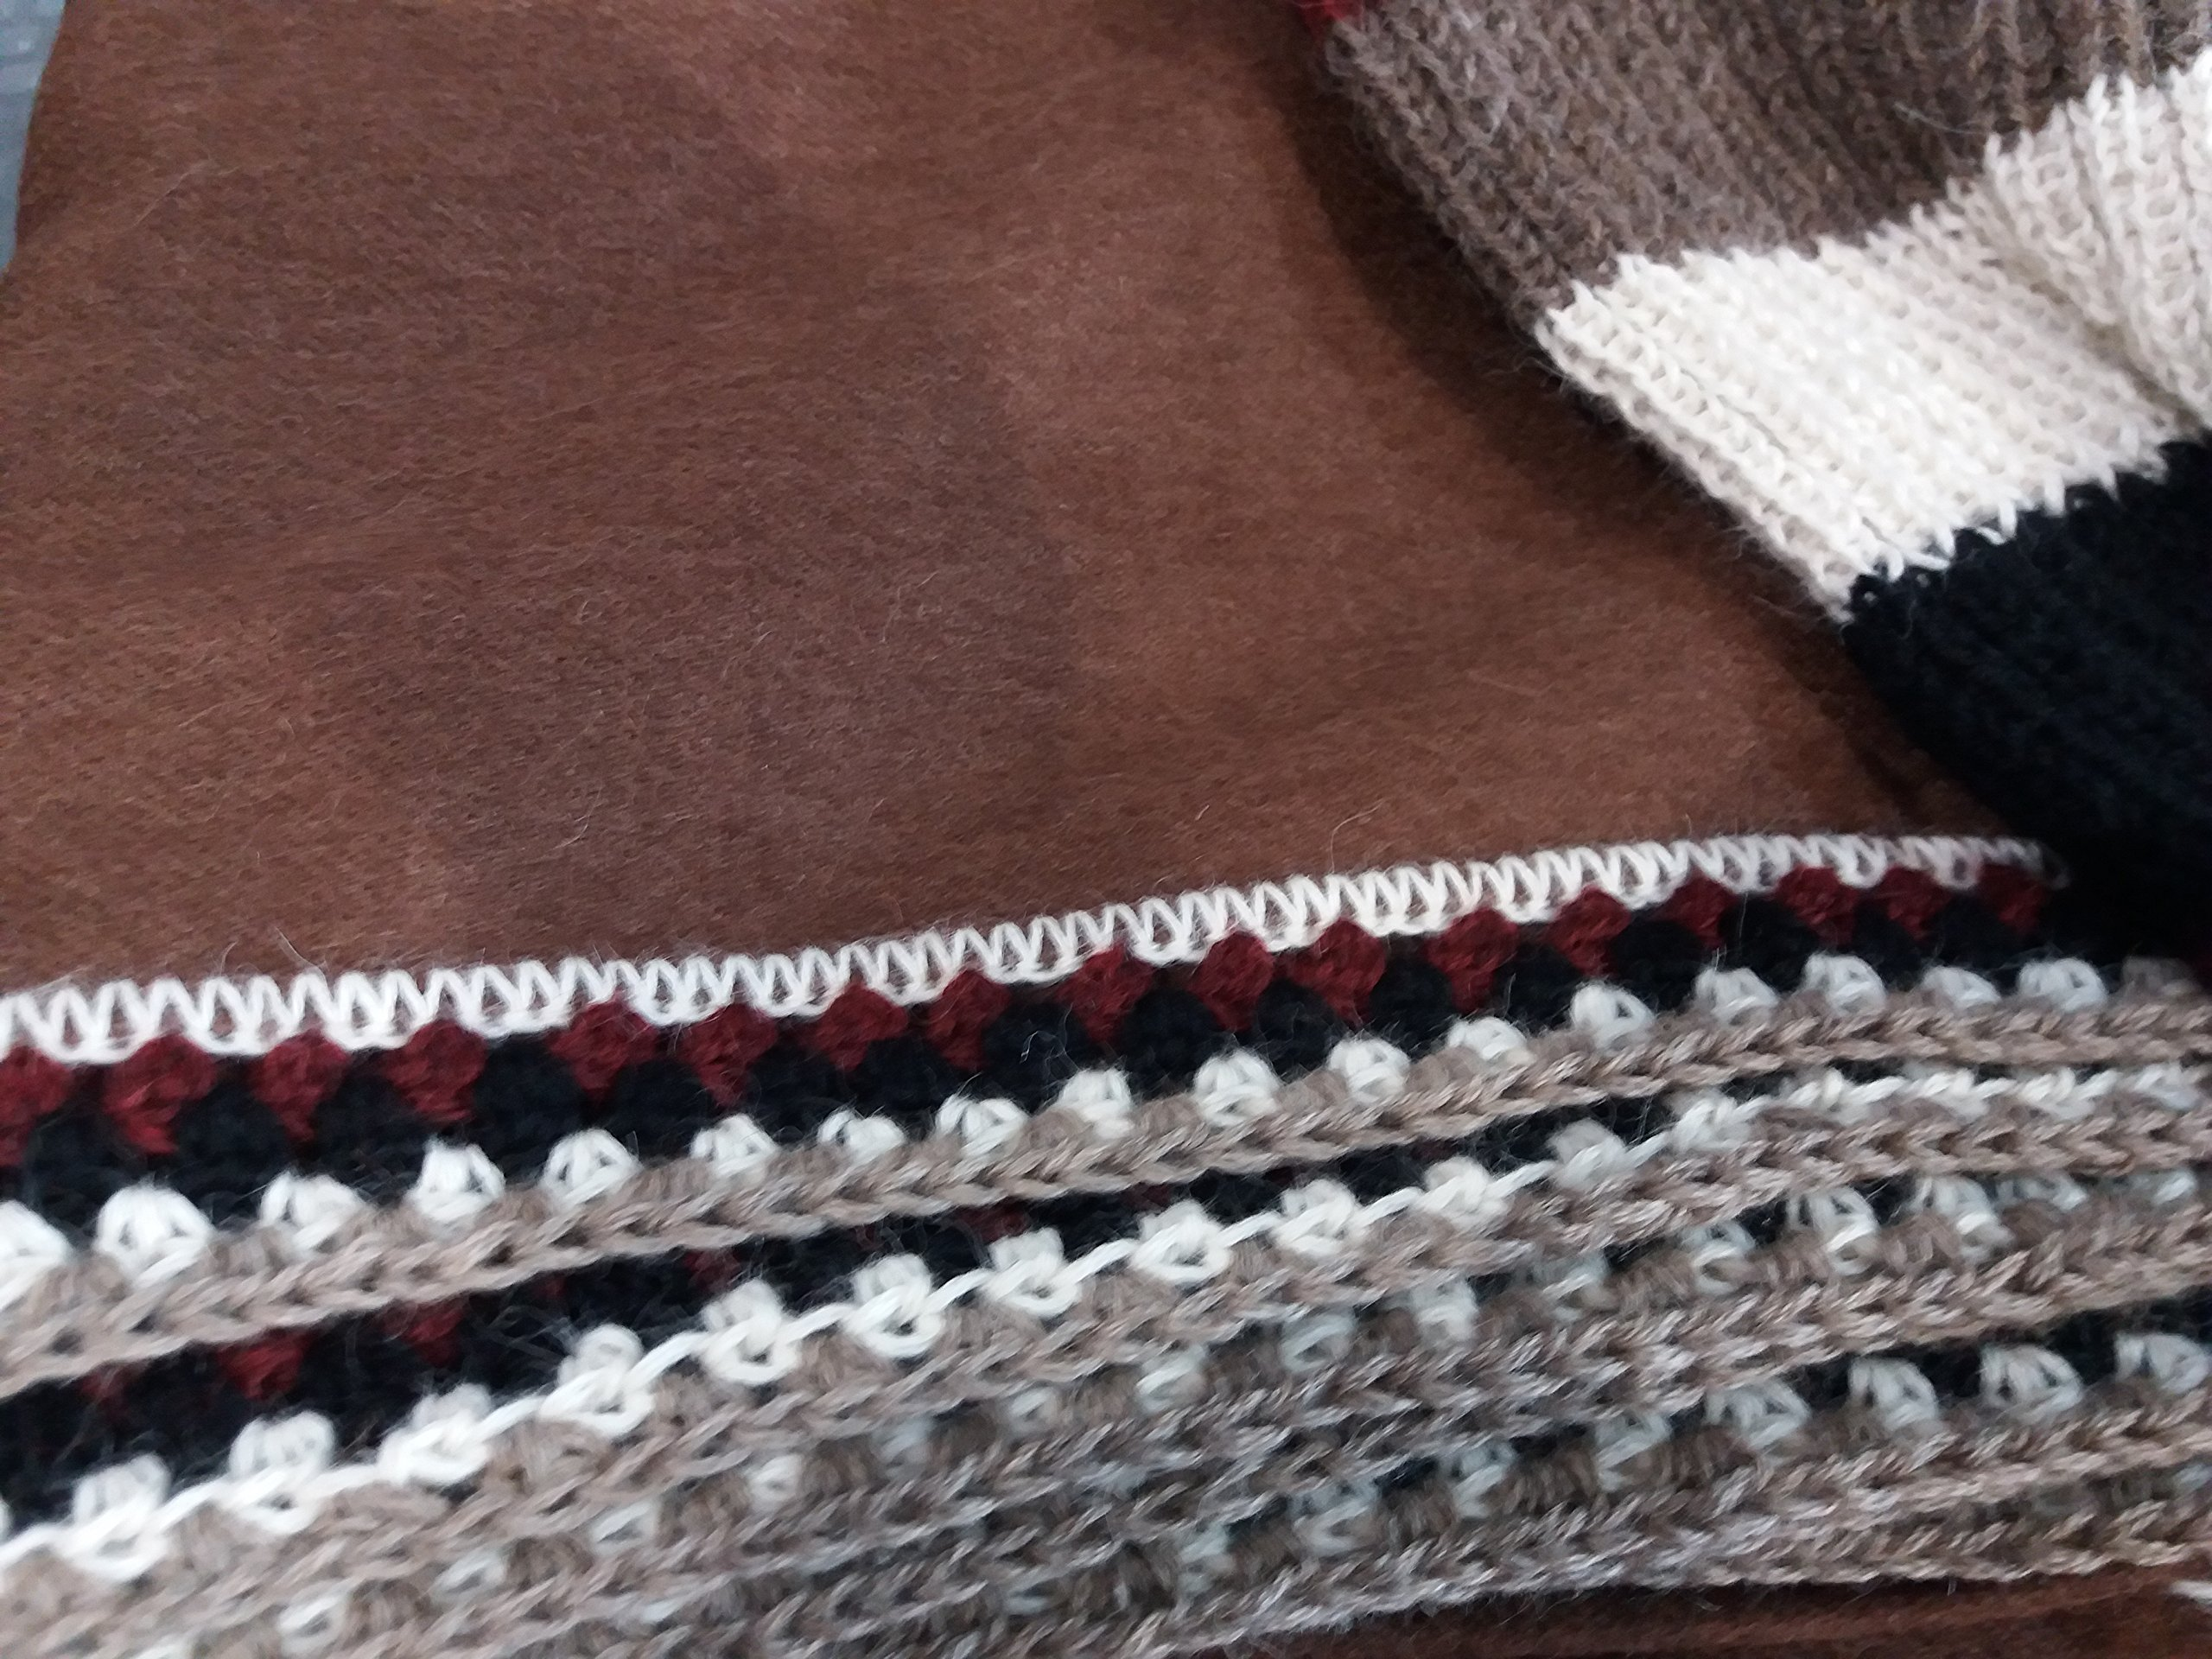 Hypoallergenic 100% Royal Alpaca Poncho Turtleneck Wrap Shawl, Brown by Sweet Dreams Home (Image #3)